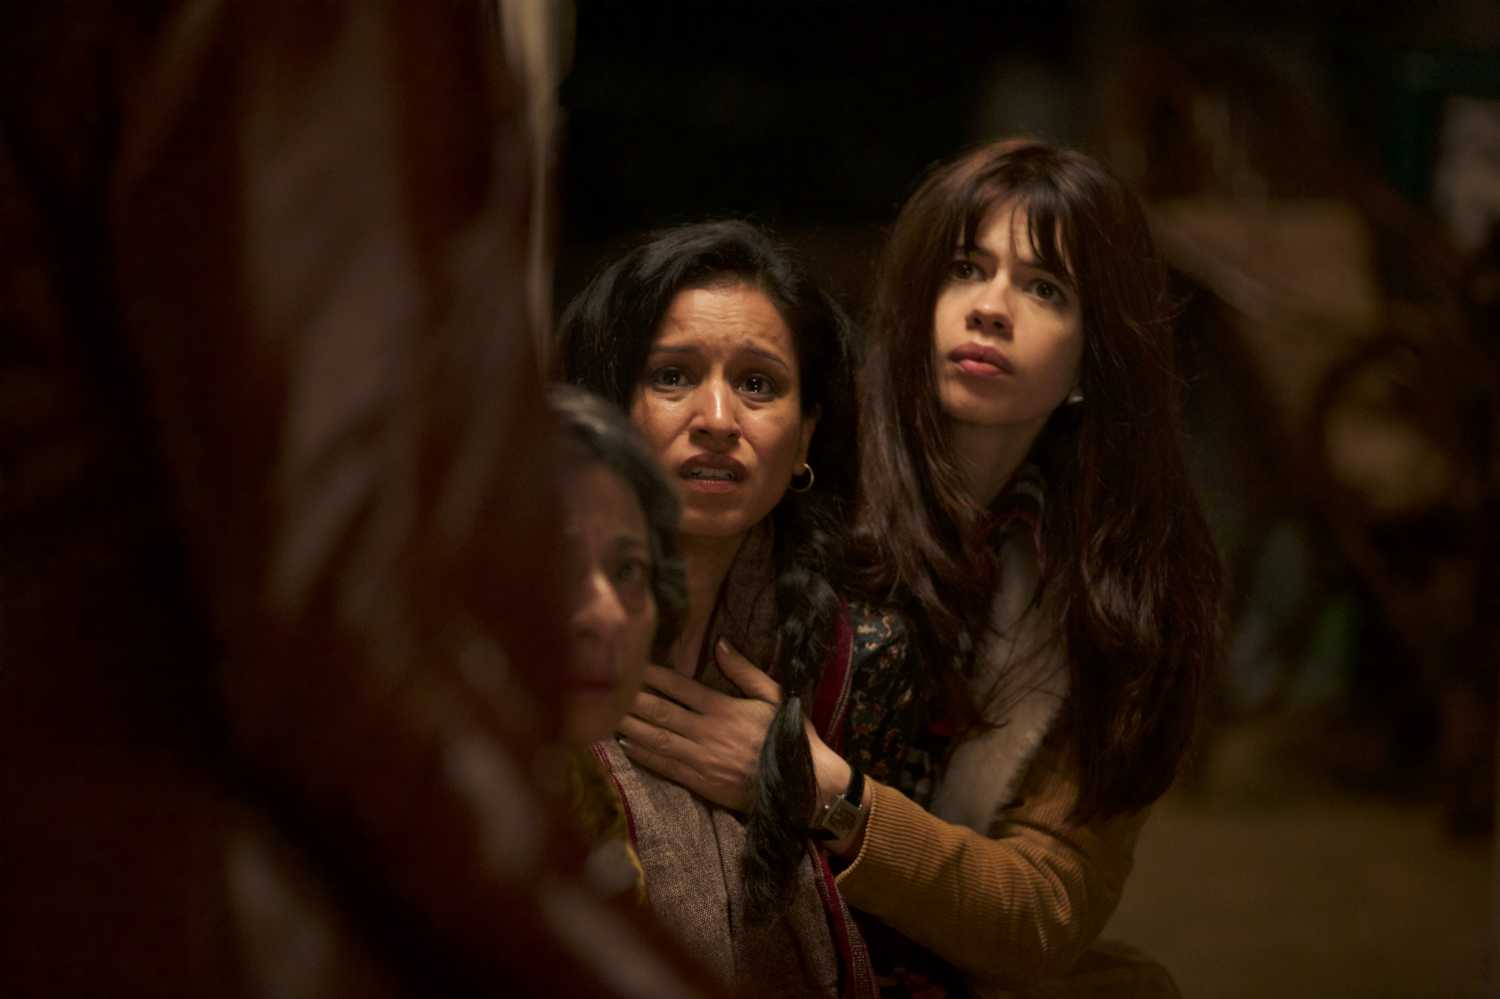 'A Death in a Gunj' Is a Moving Take on the Darker Side of Families